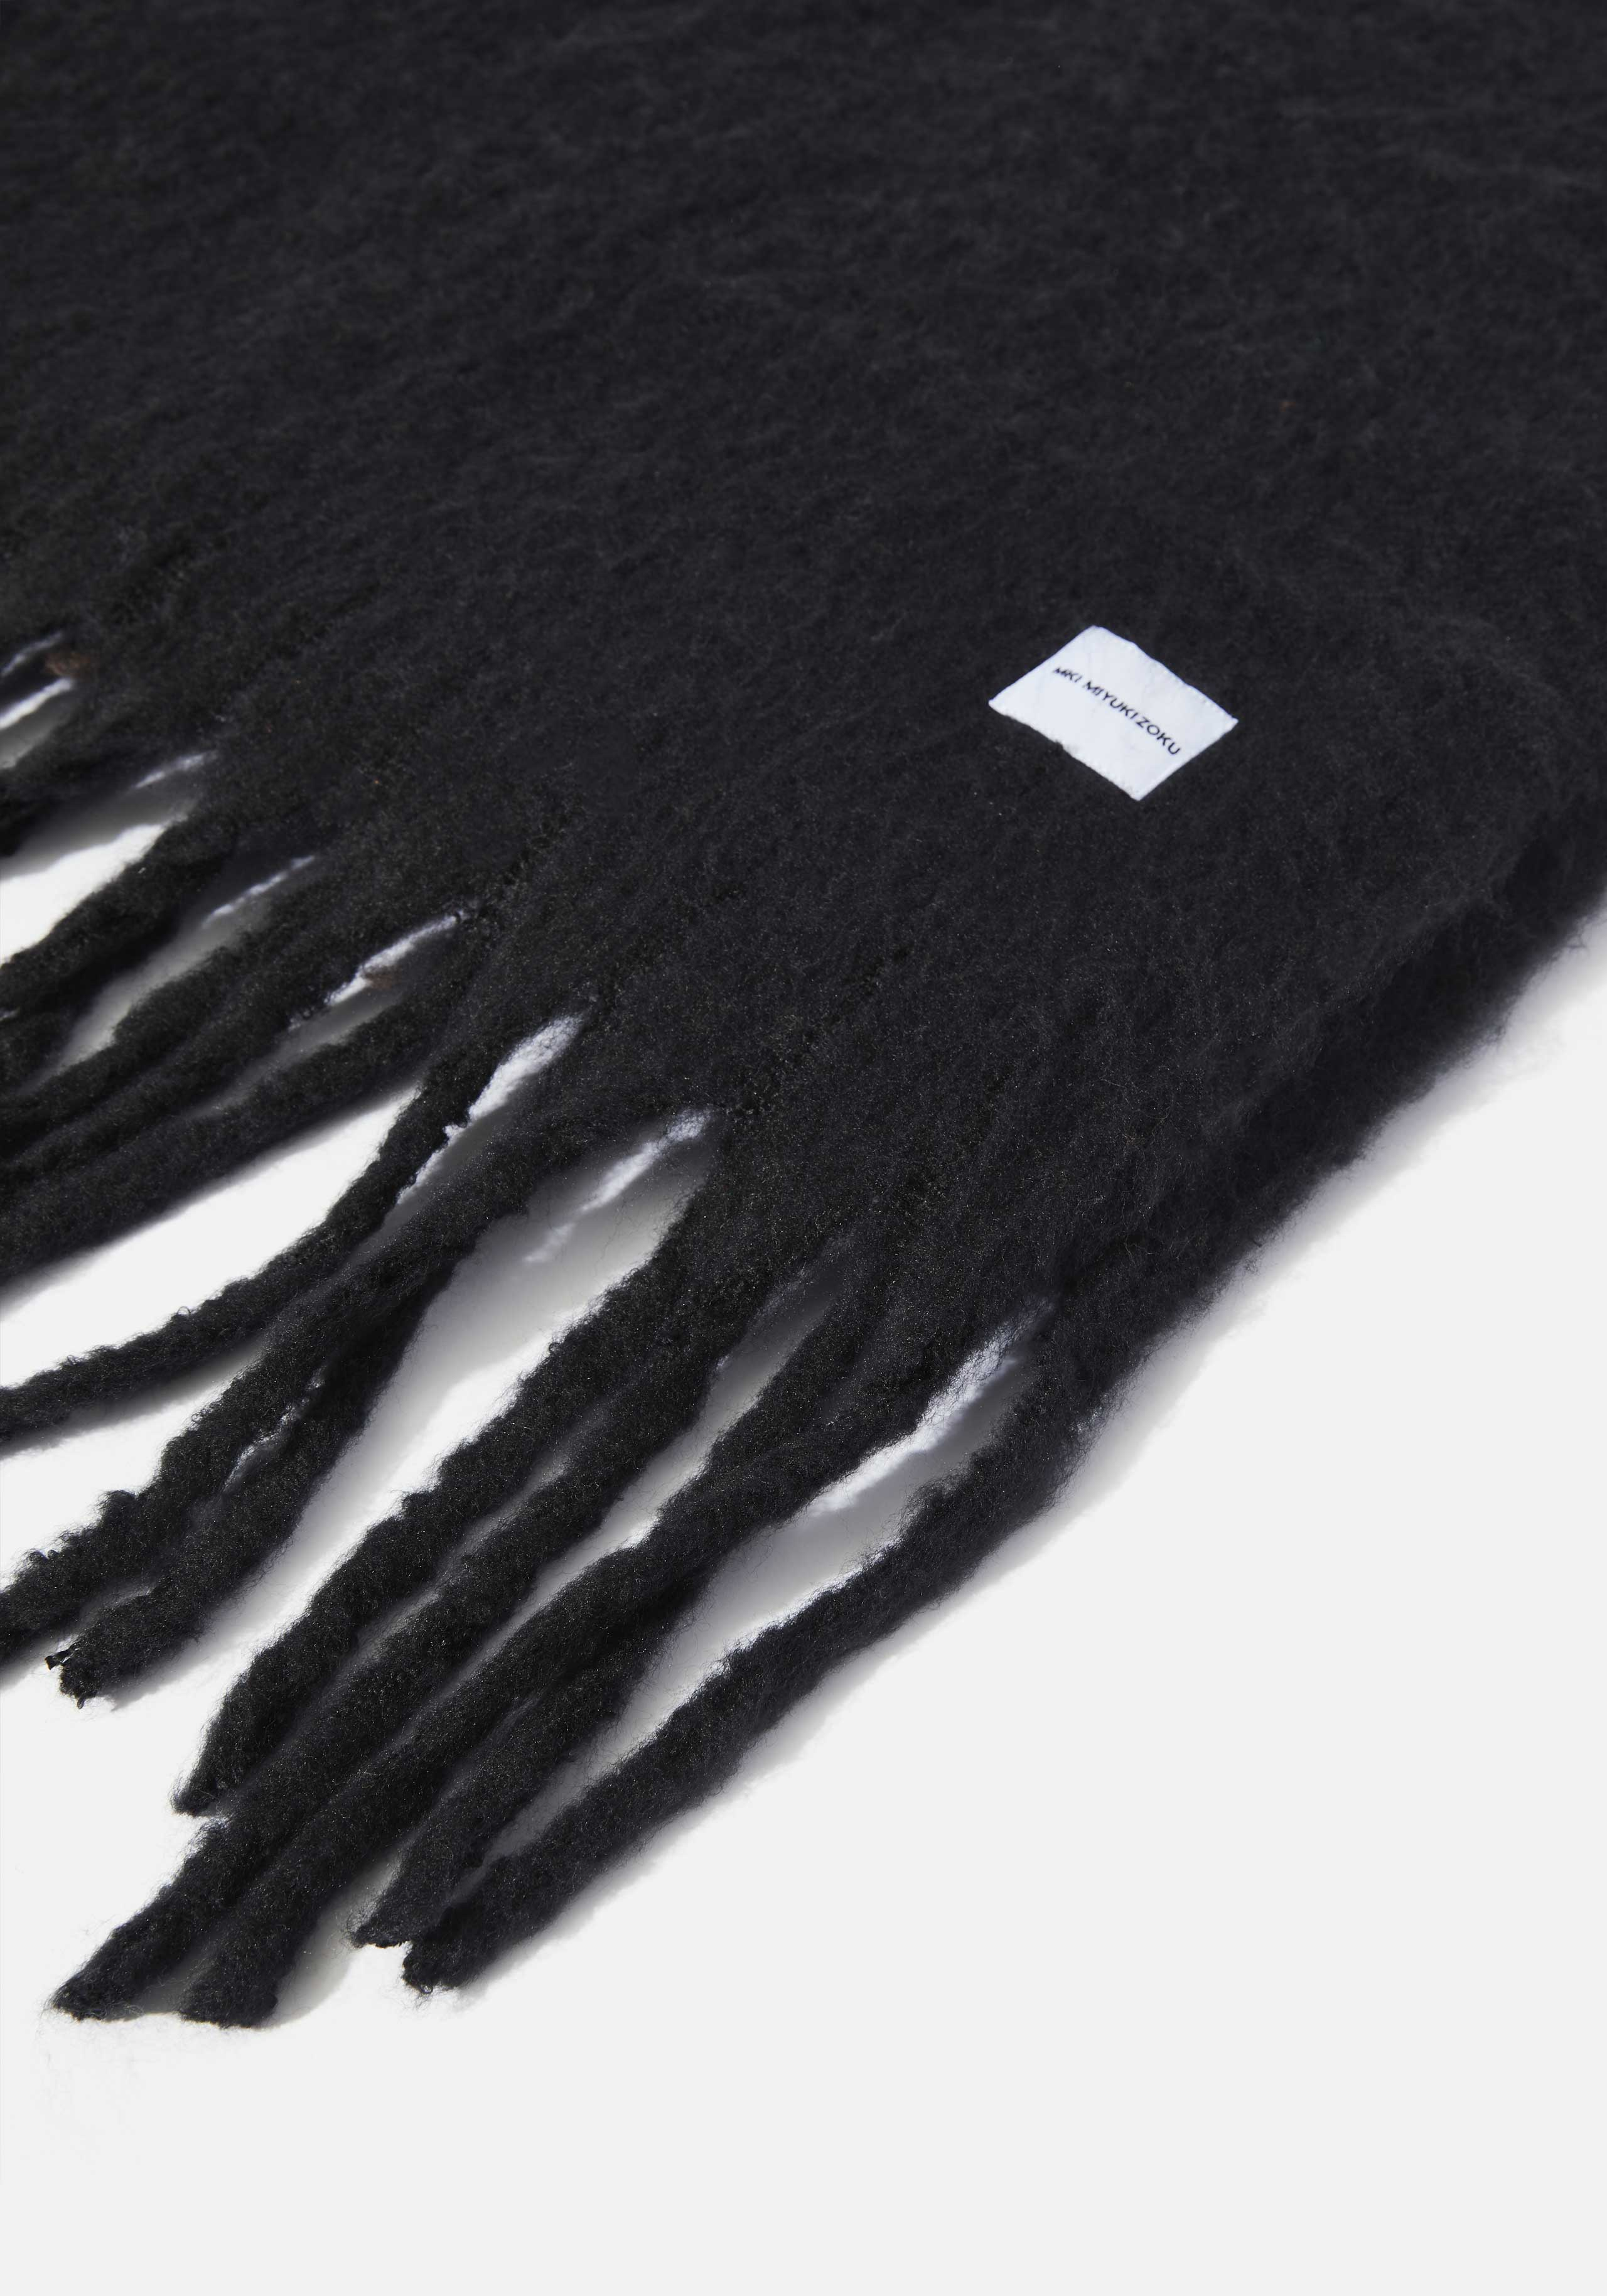 mki woven fringed scarf 4